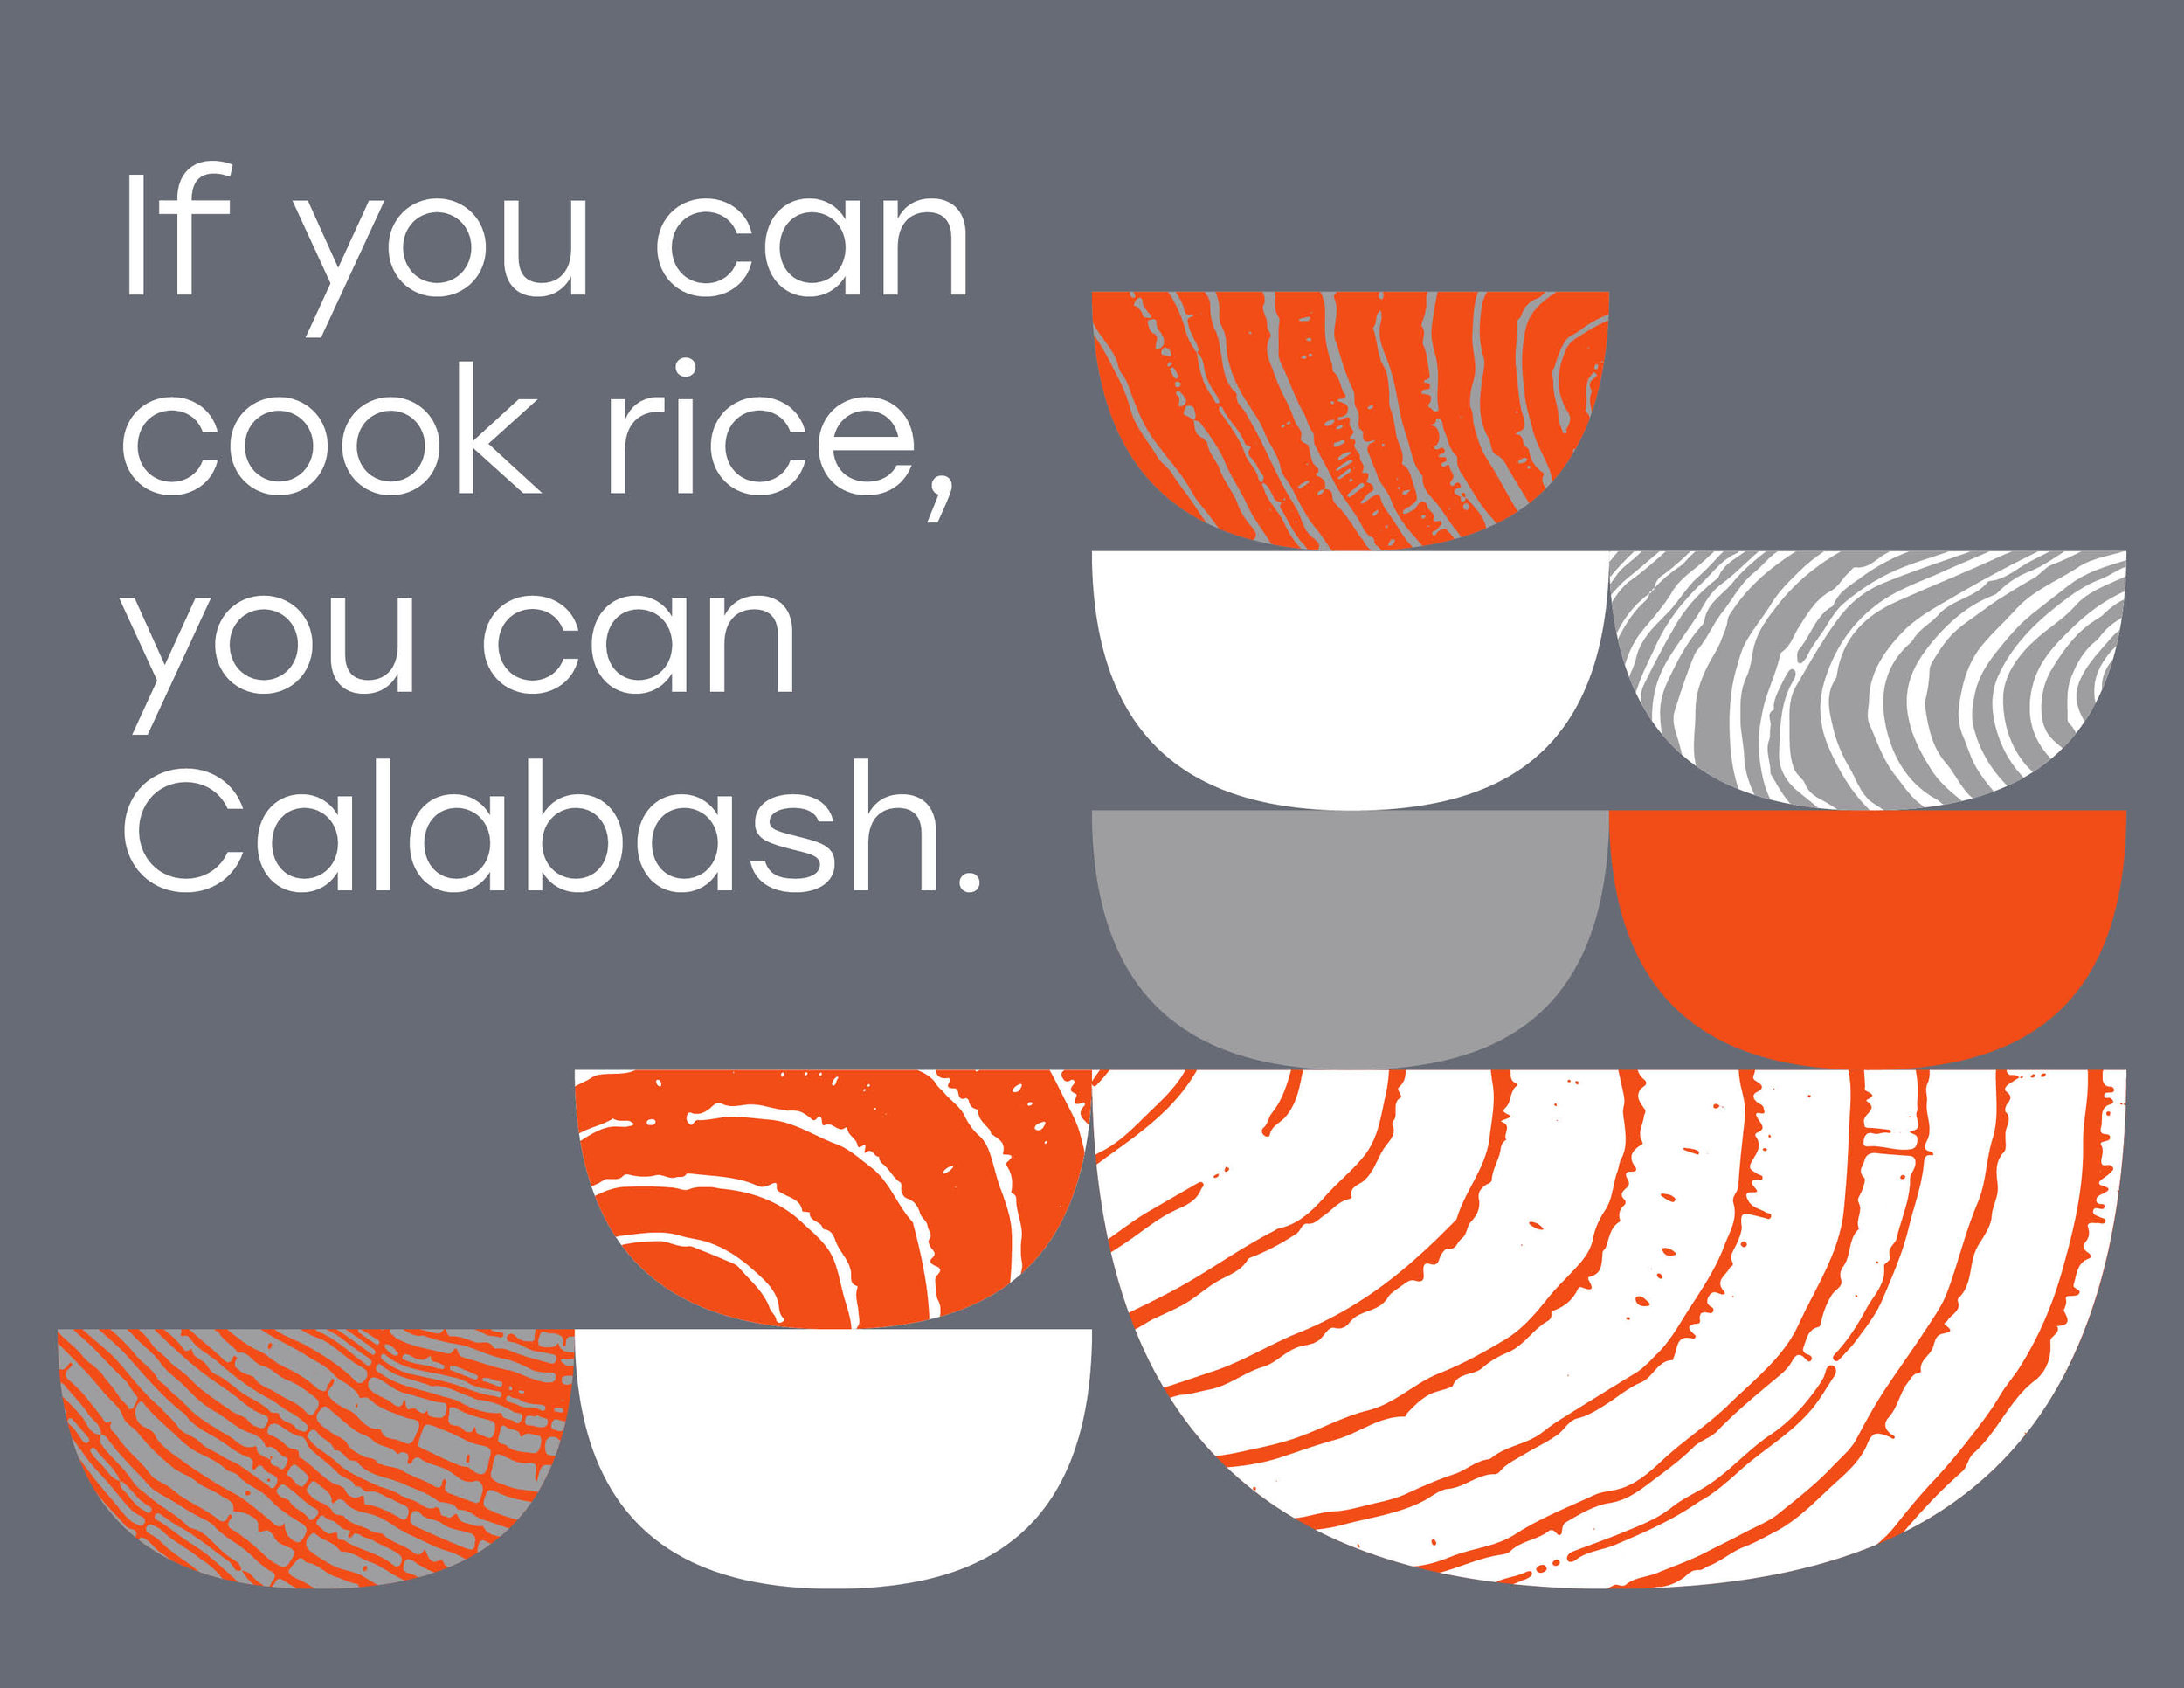 Calabash-WeeklyRecipes6.jpg